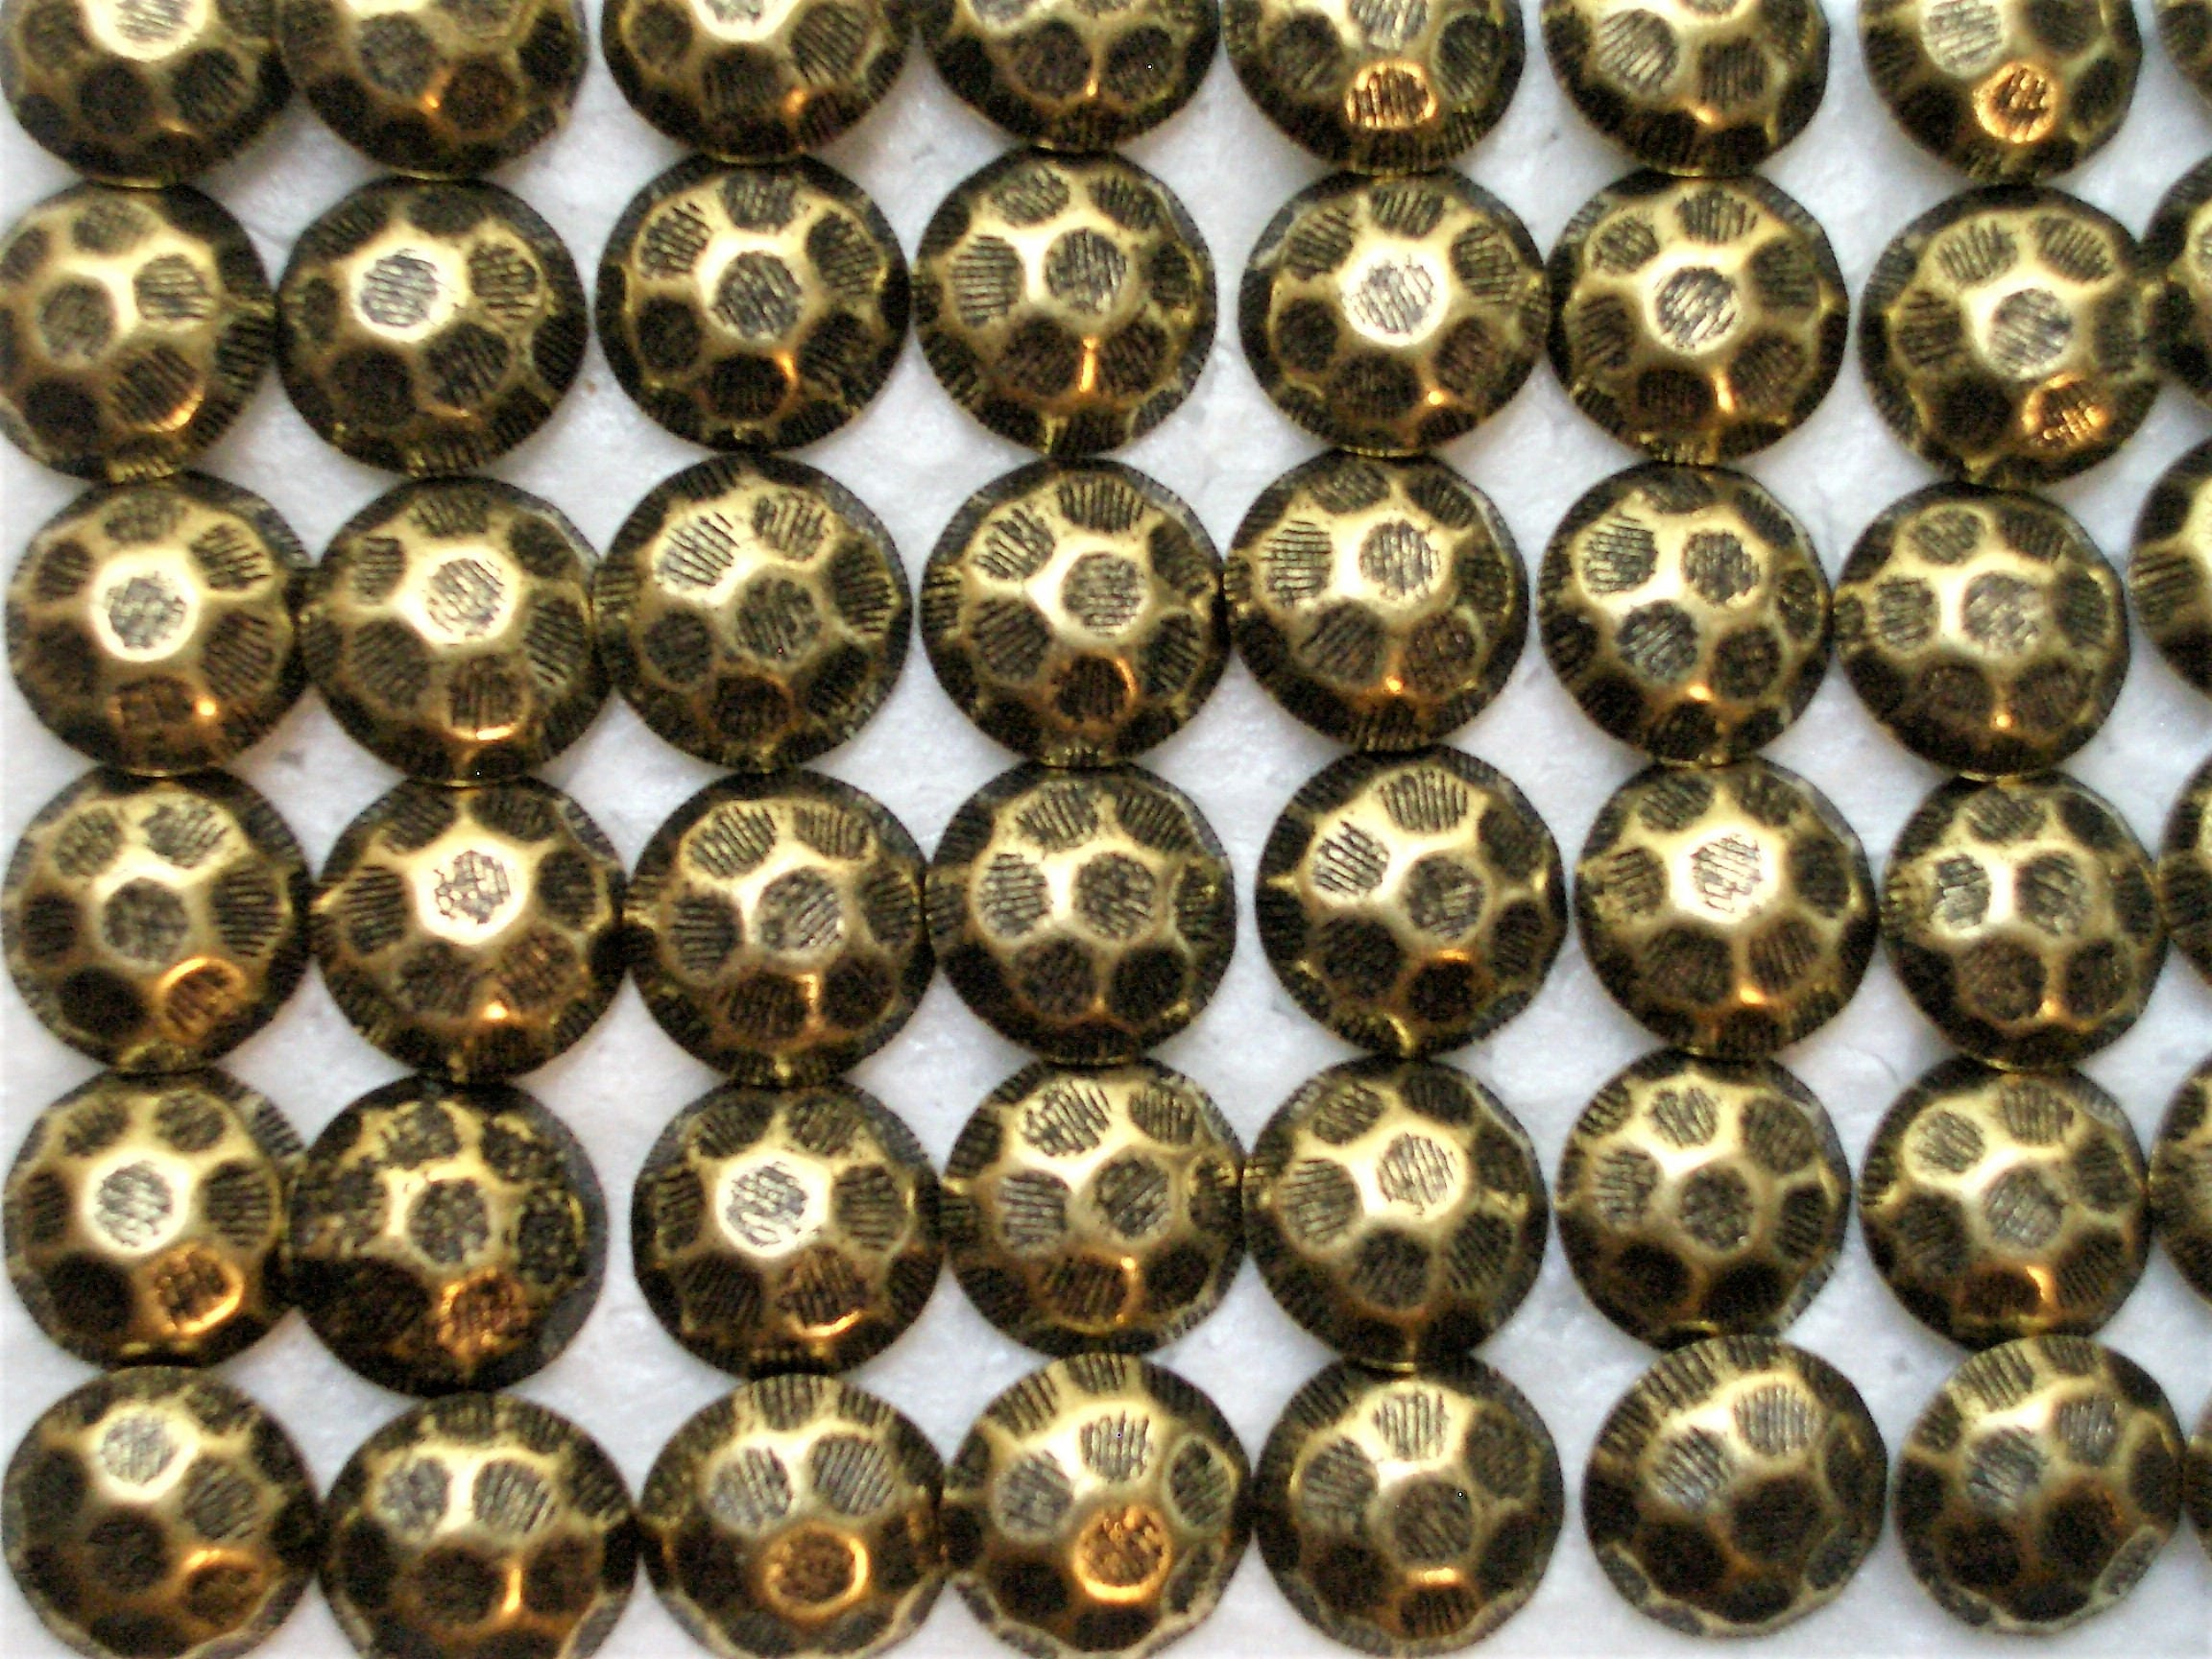 100 Antique Brass Upholstery Tacks Nails Hammered Finish 7 16 Round Head